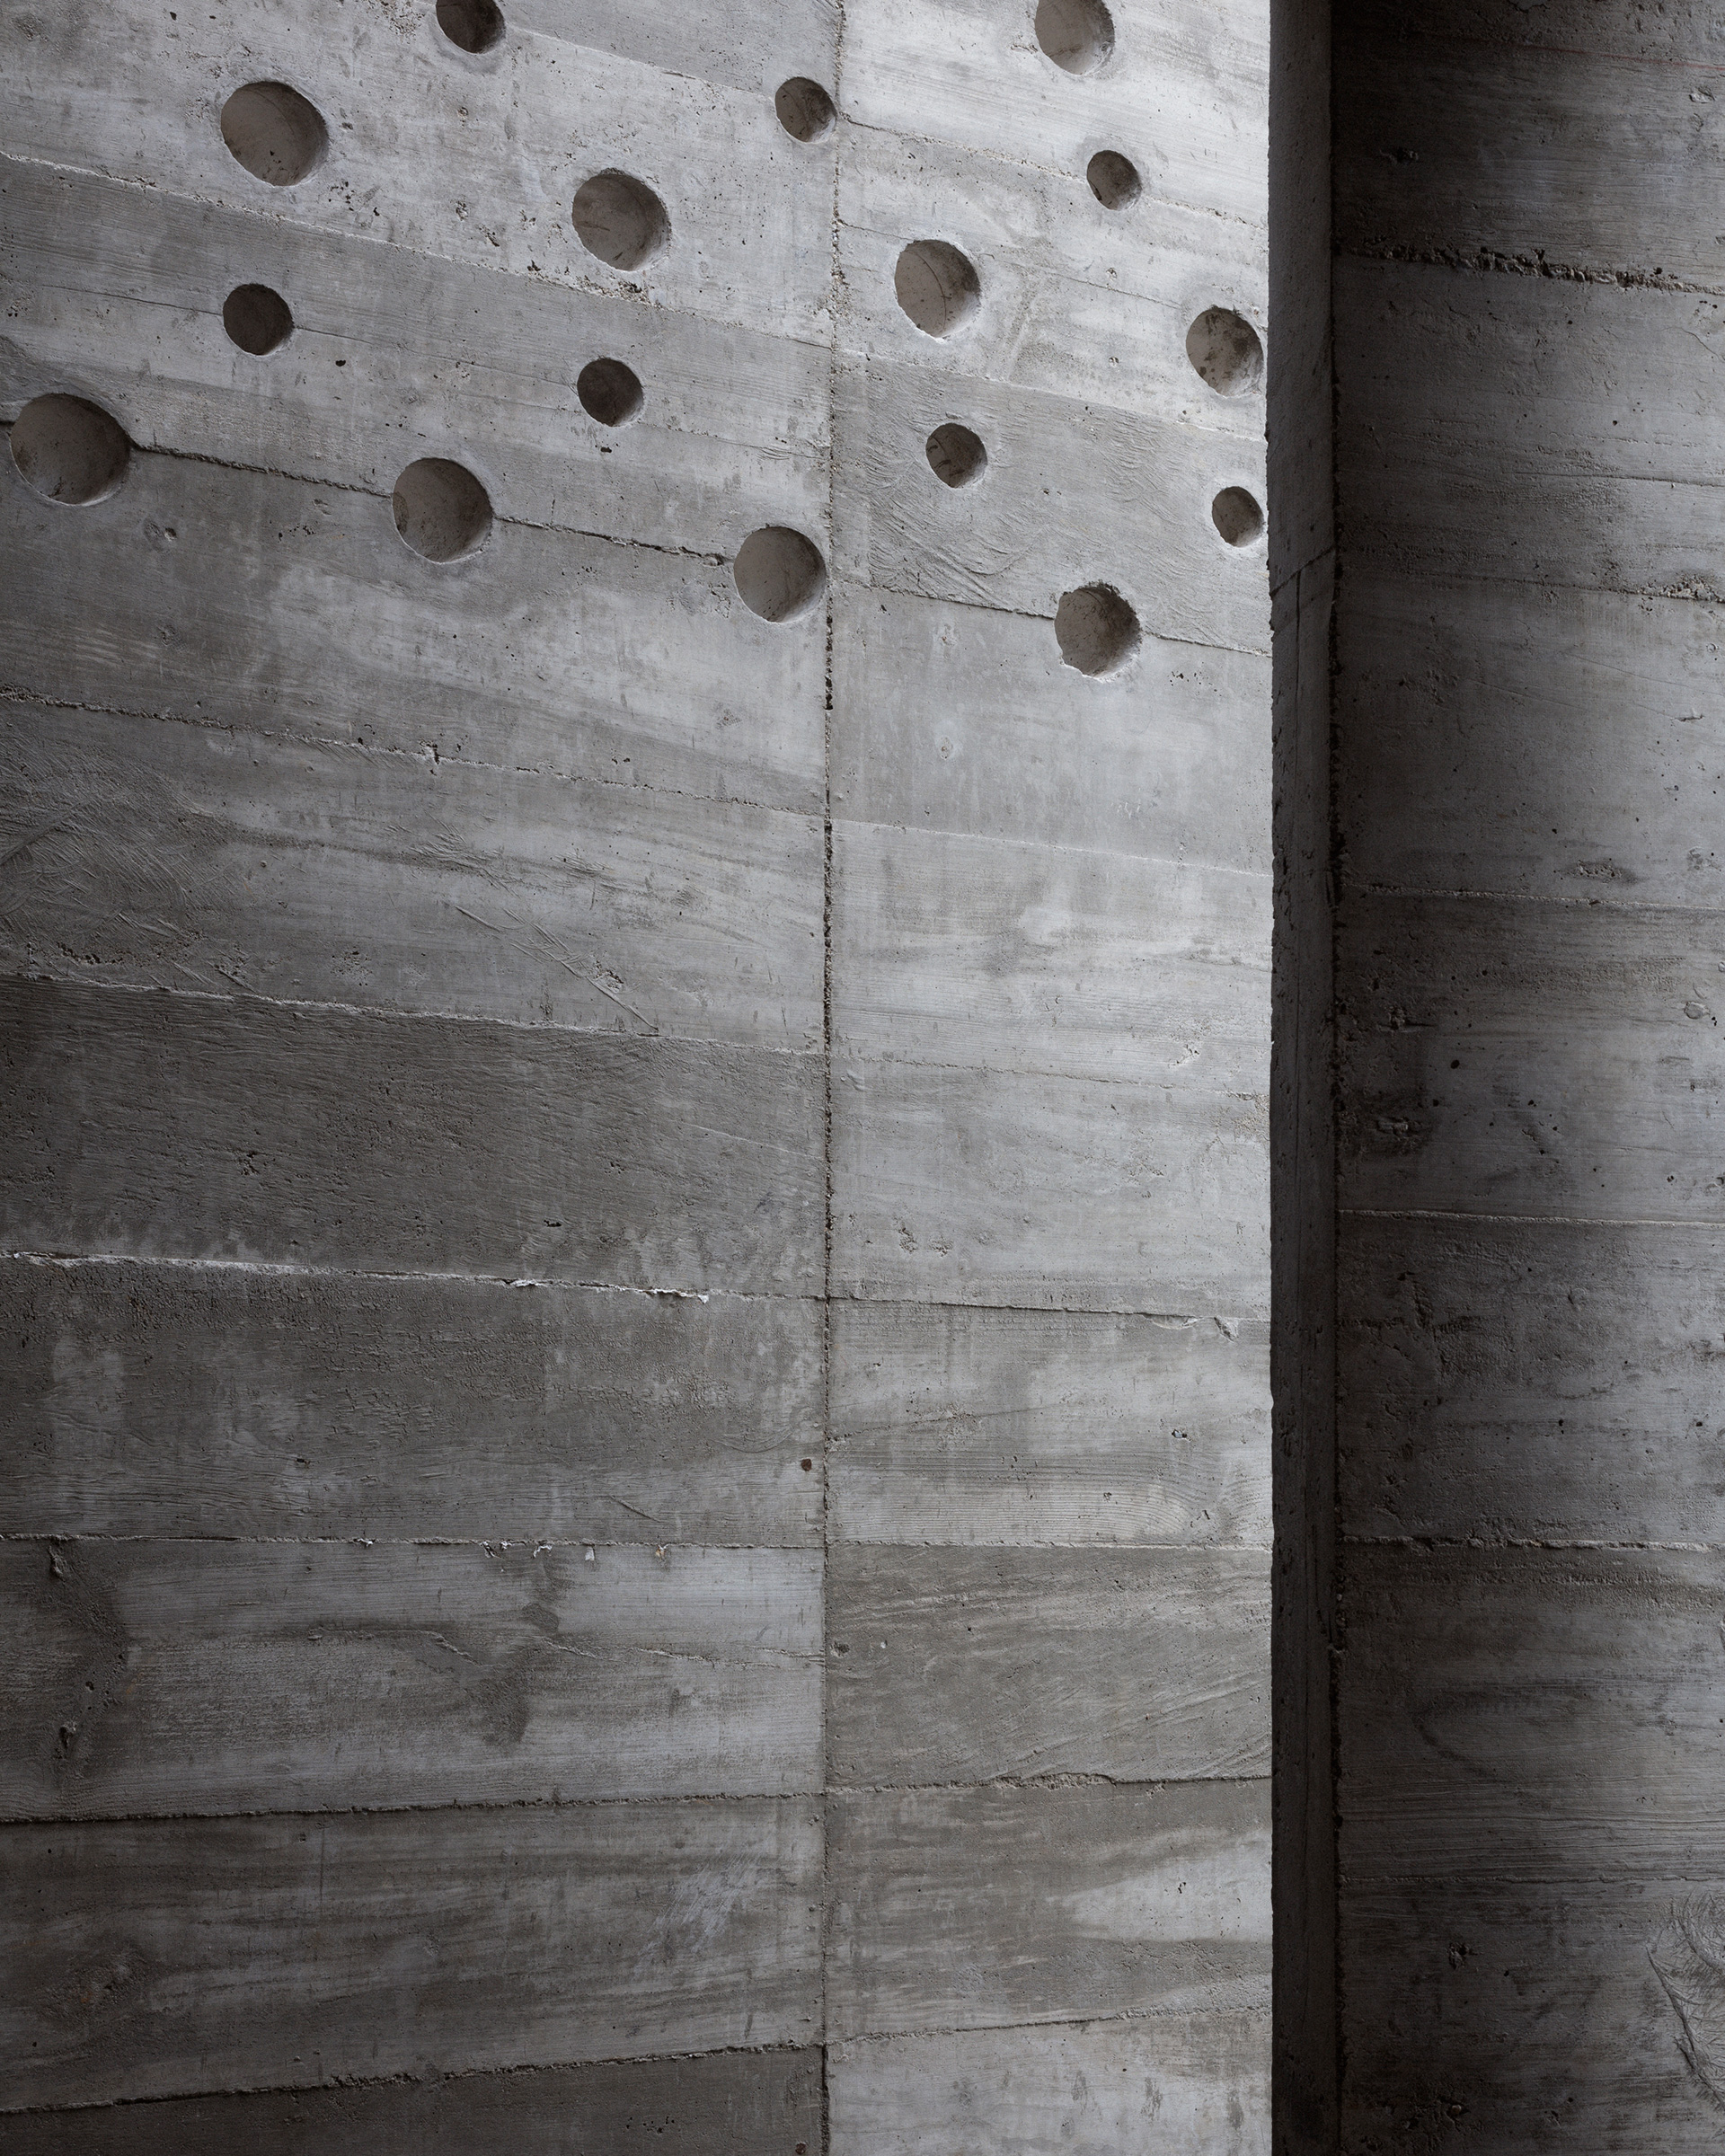 The various textures in the concrete finish | Mexico | Ludwig Godefroy |STIRworld